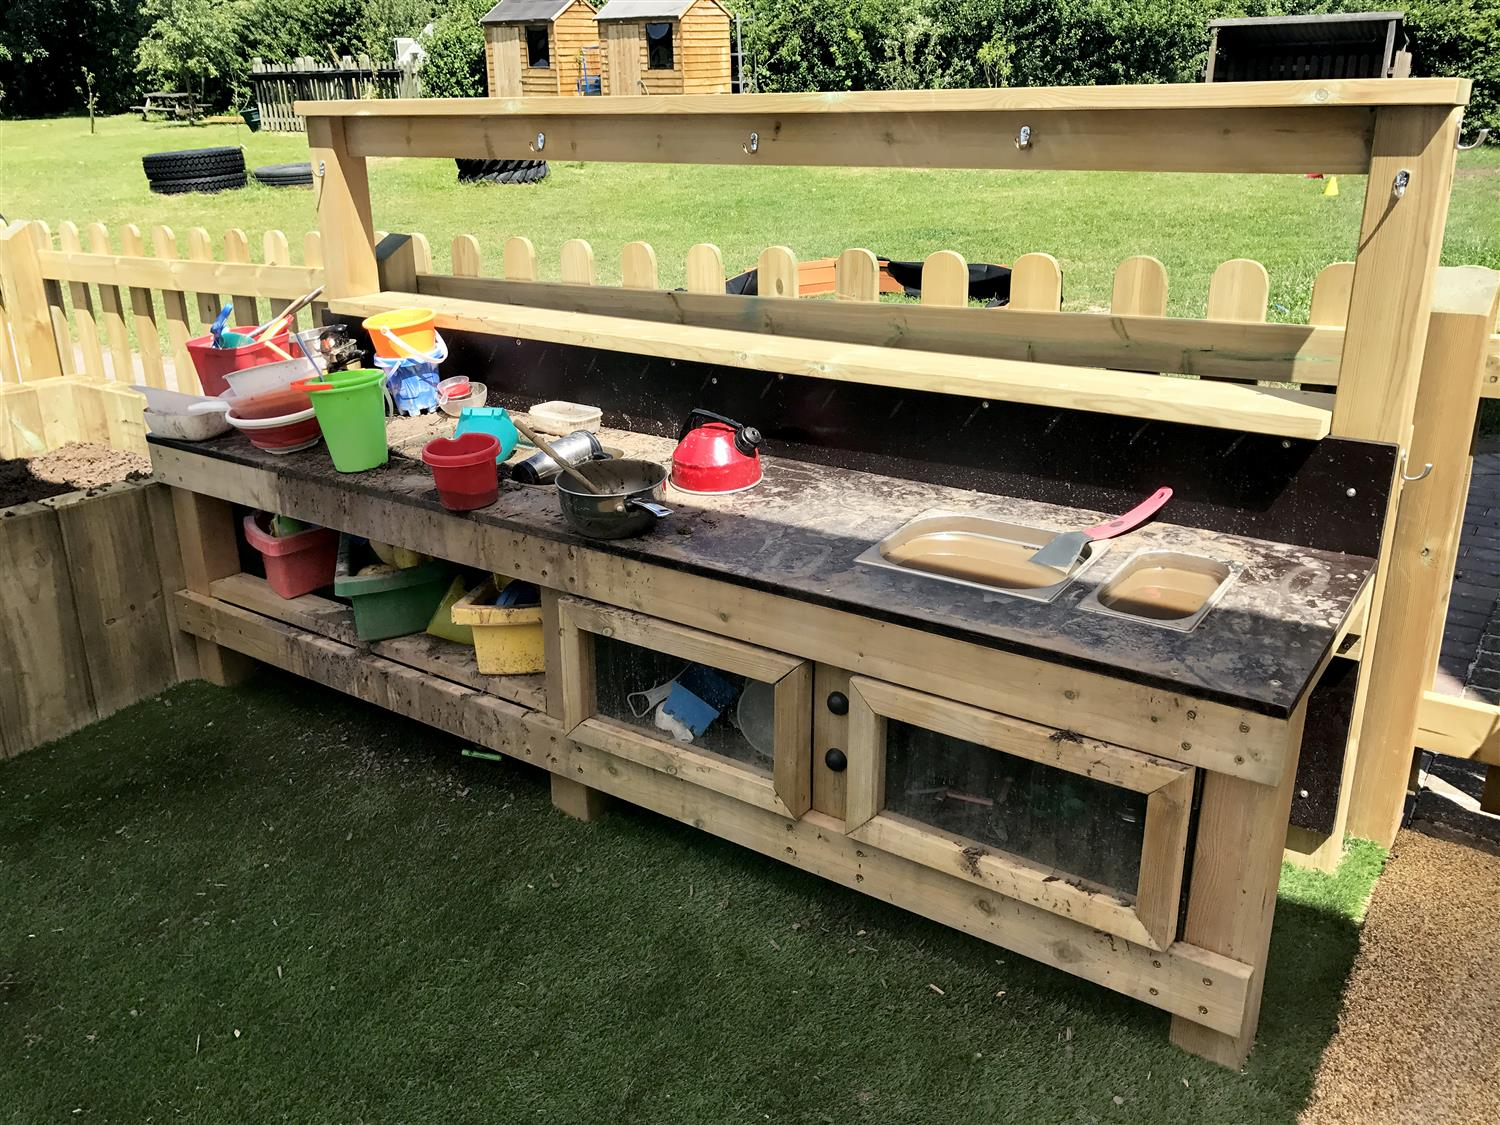 Mud Kitchen Ideas Eyfs.The Meadow S Eyfs Outdoor Learning Environment Pentagon Play